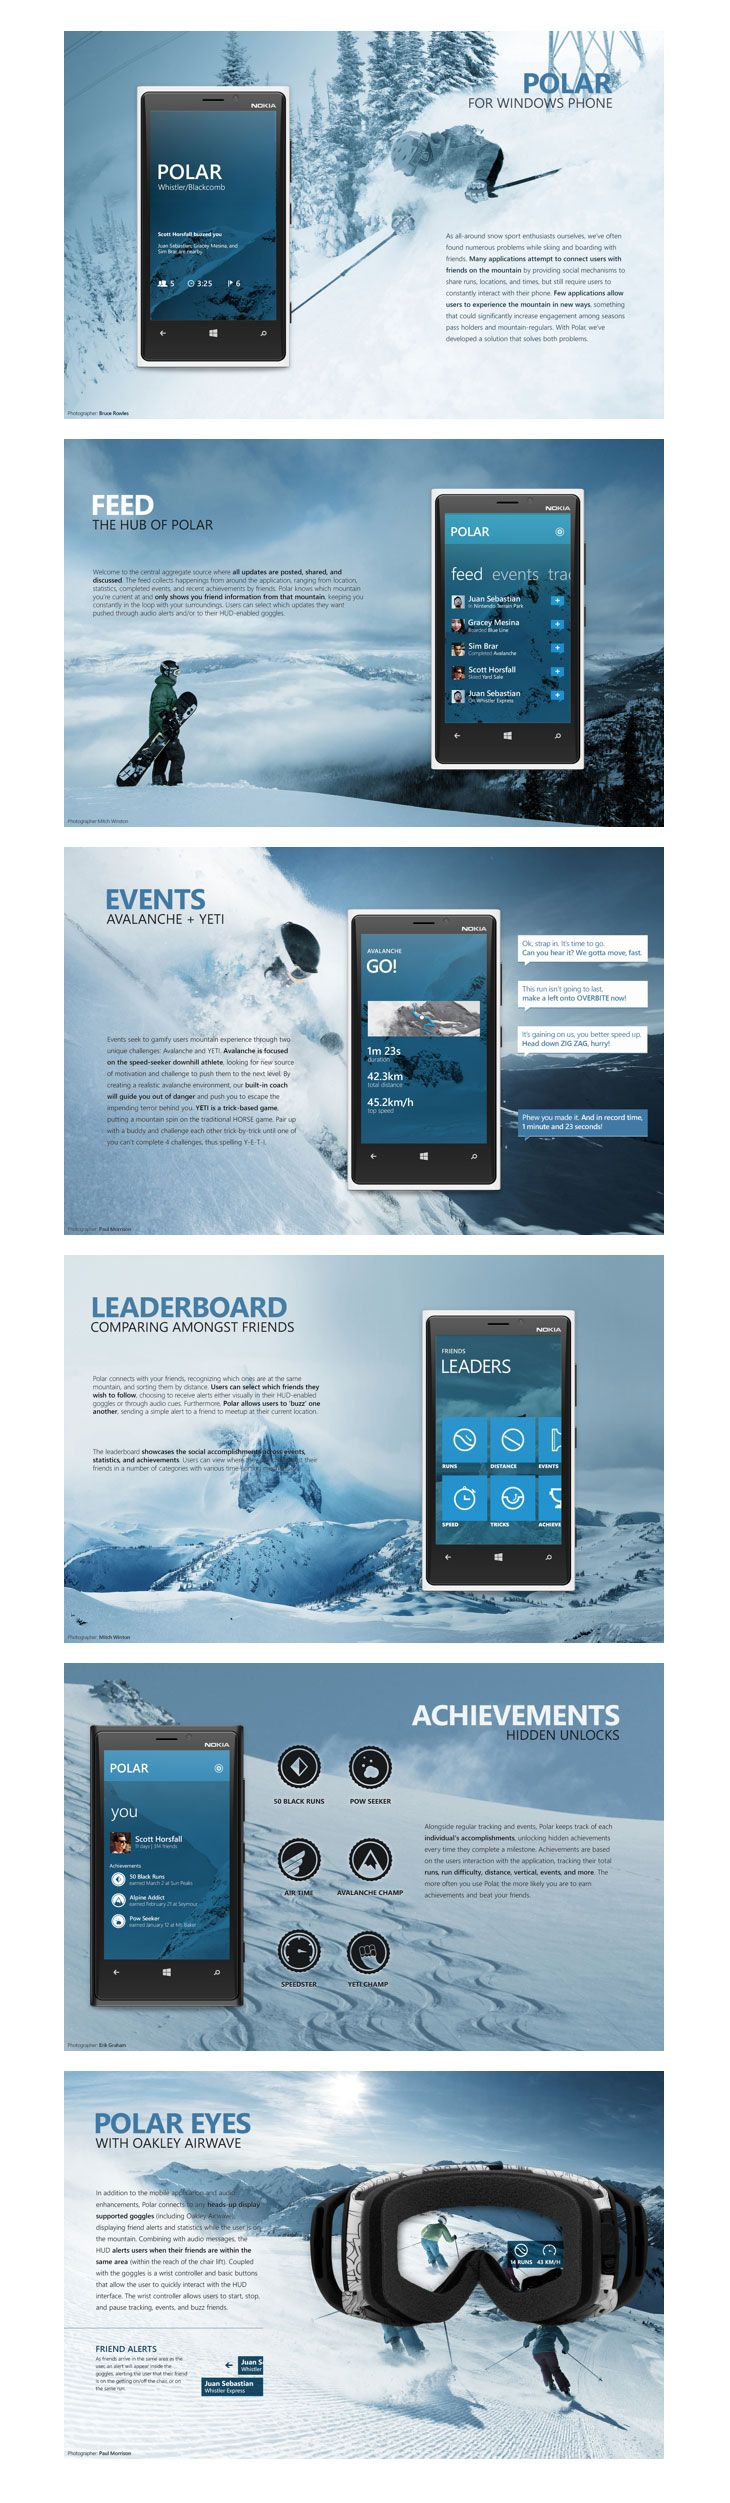 Good use of iconography. The blue shift provides a nice focus and aids readability. Polar UI Design http://www.techirsh.com